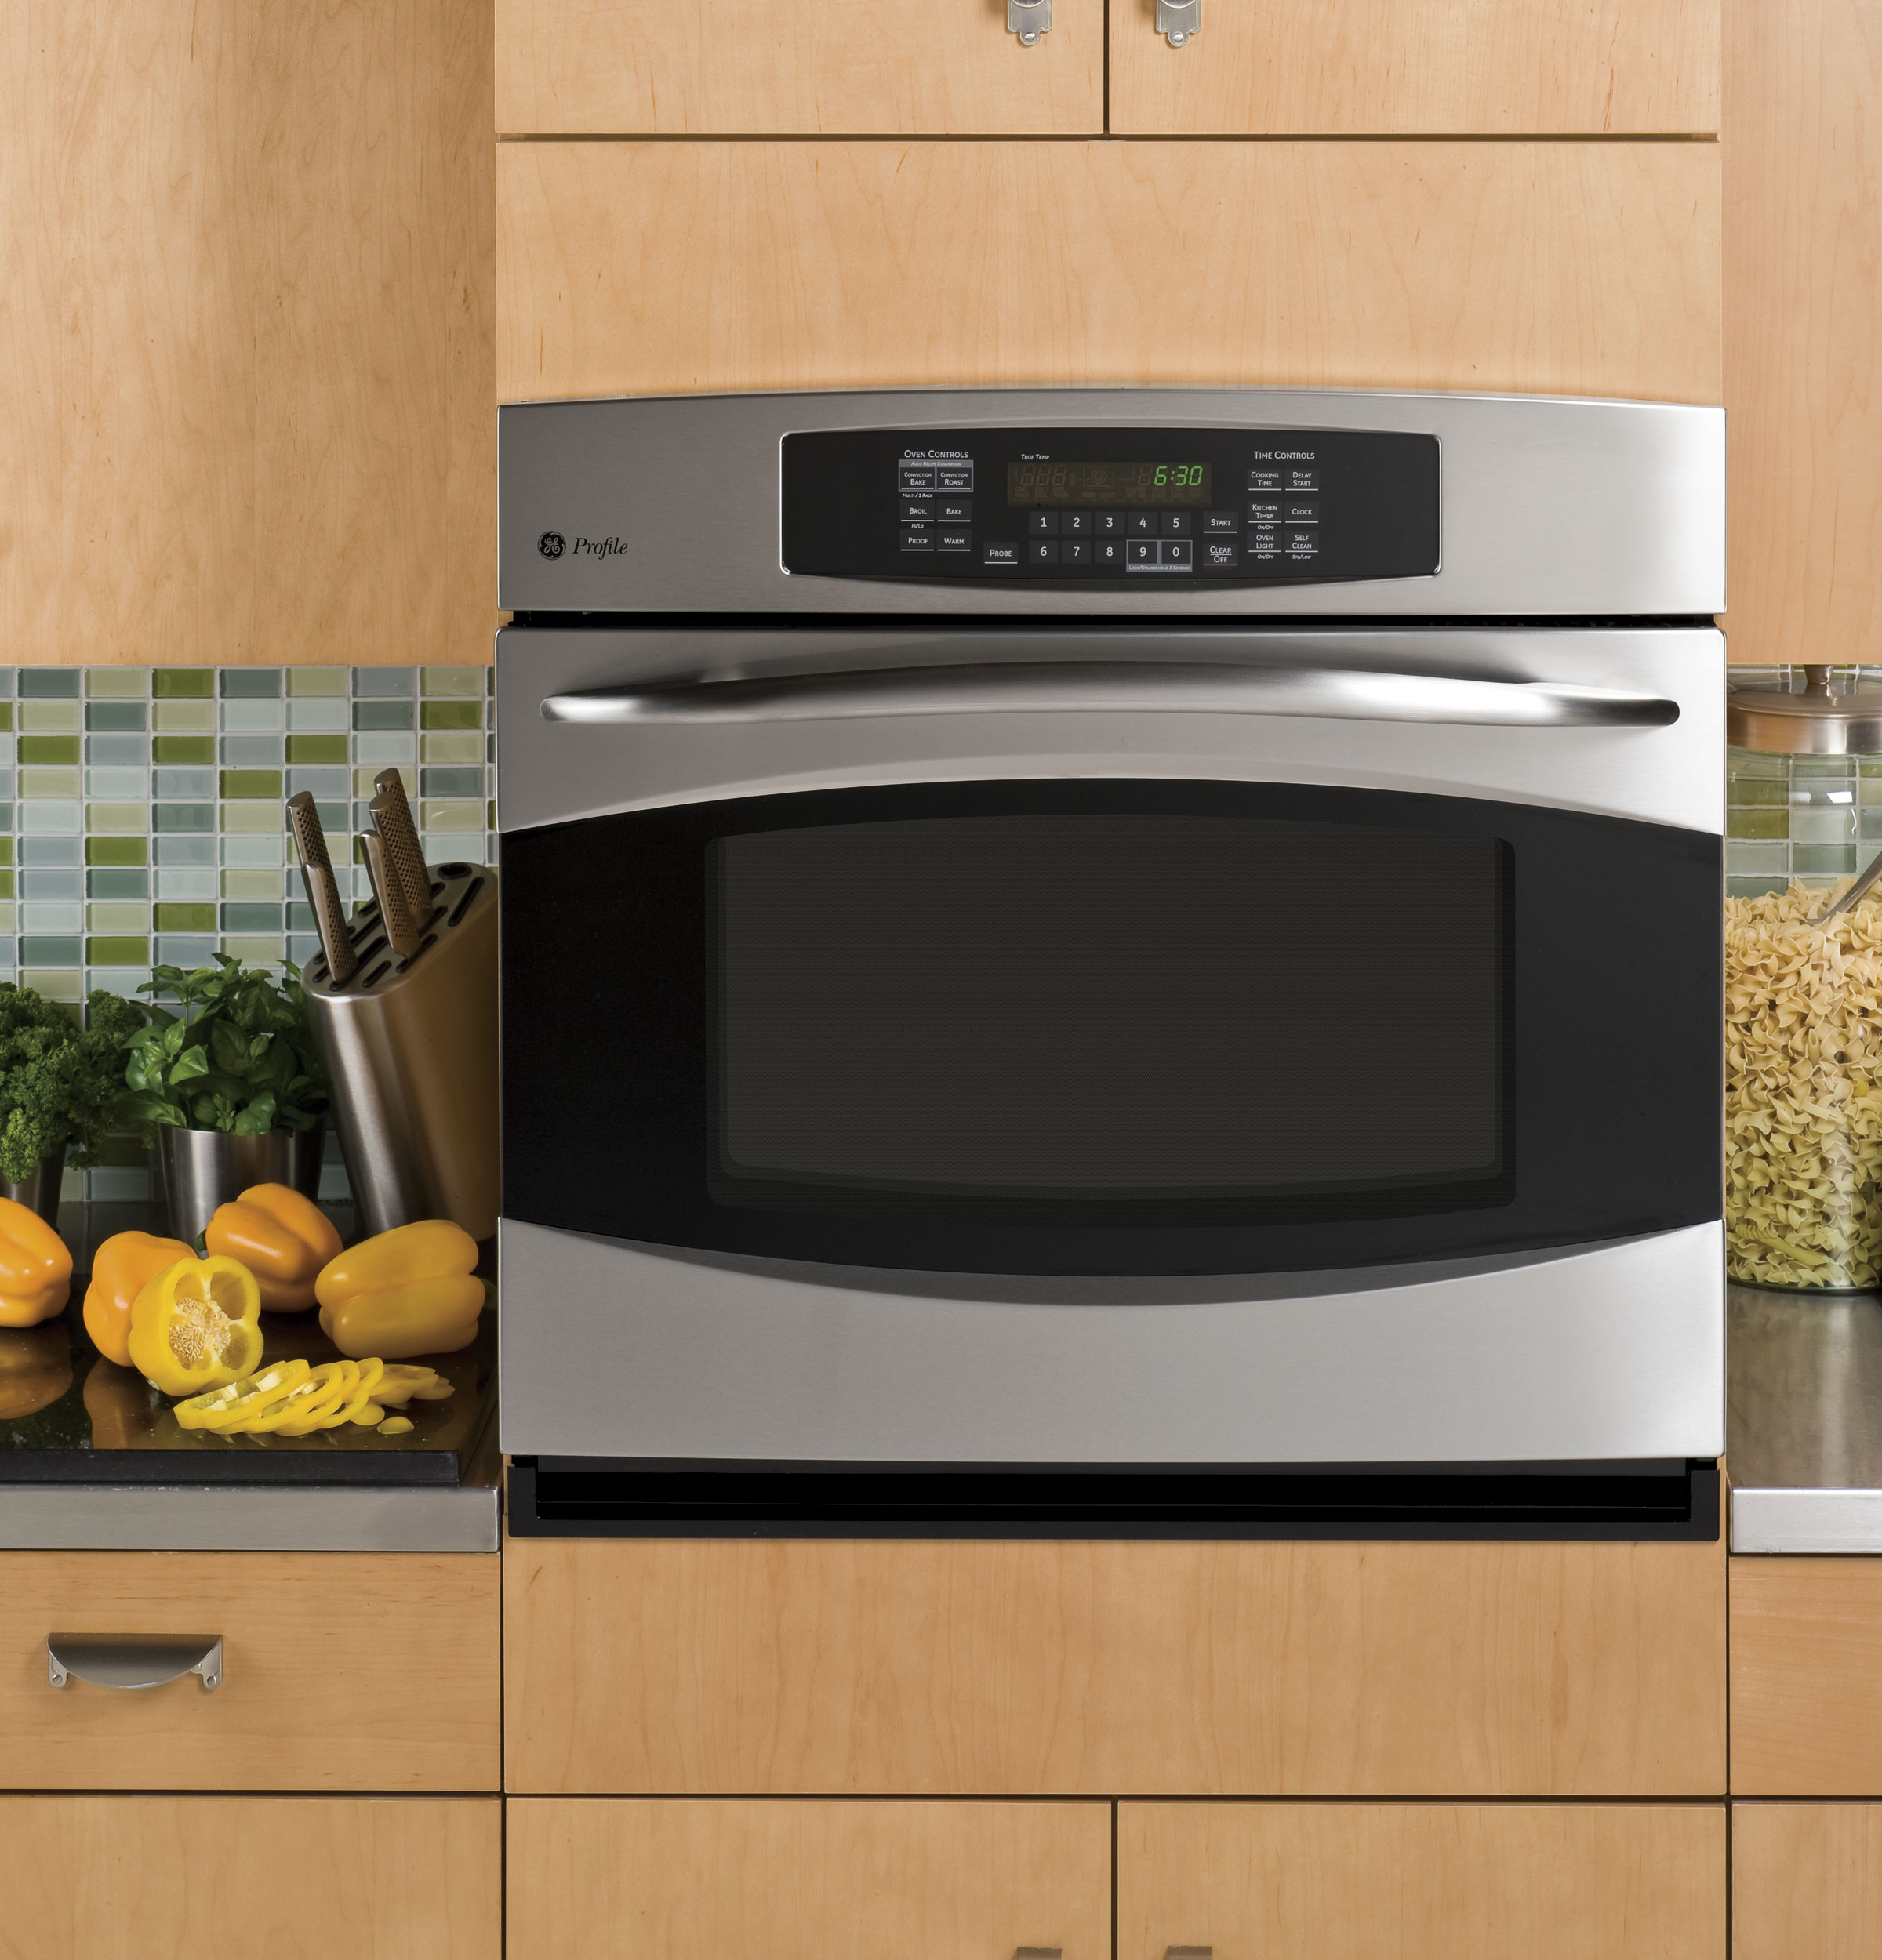 Wall oven under cooktop - Product Image